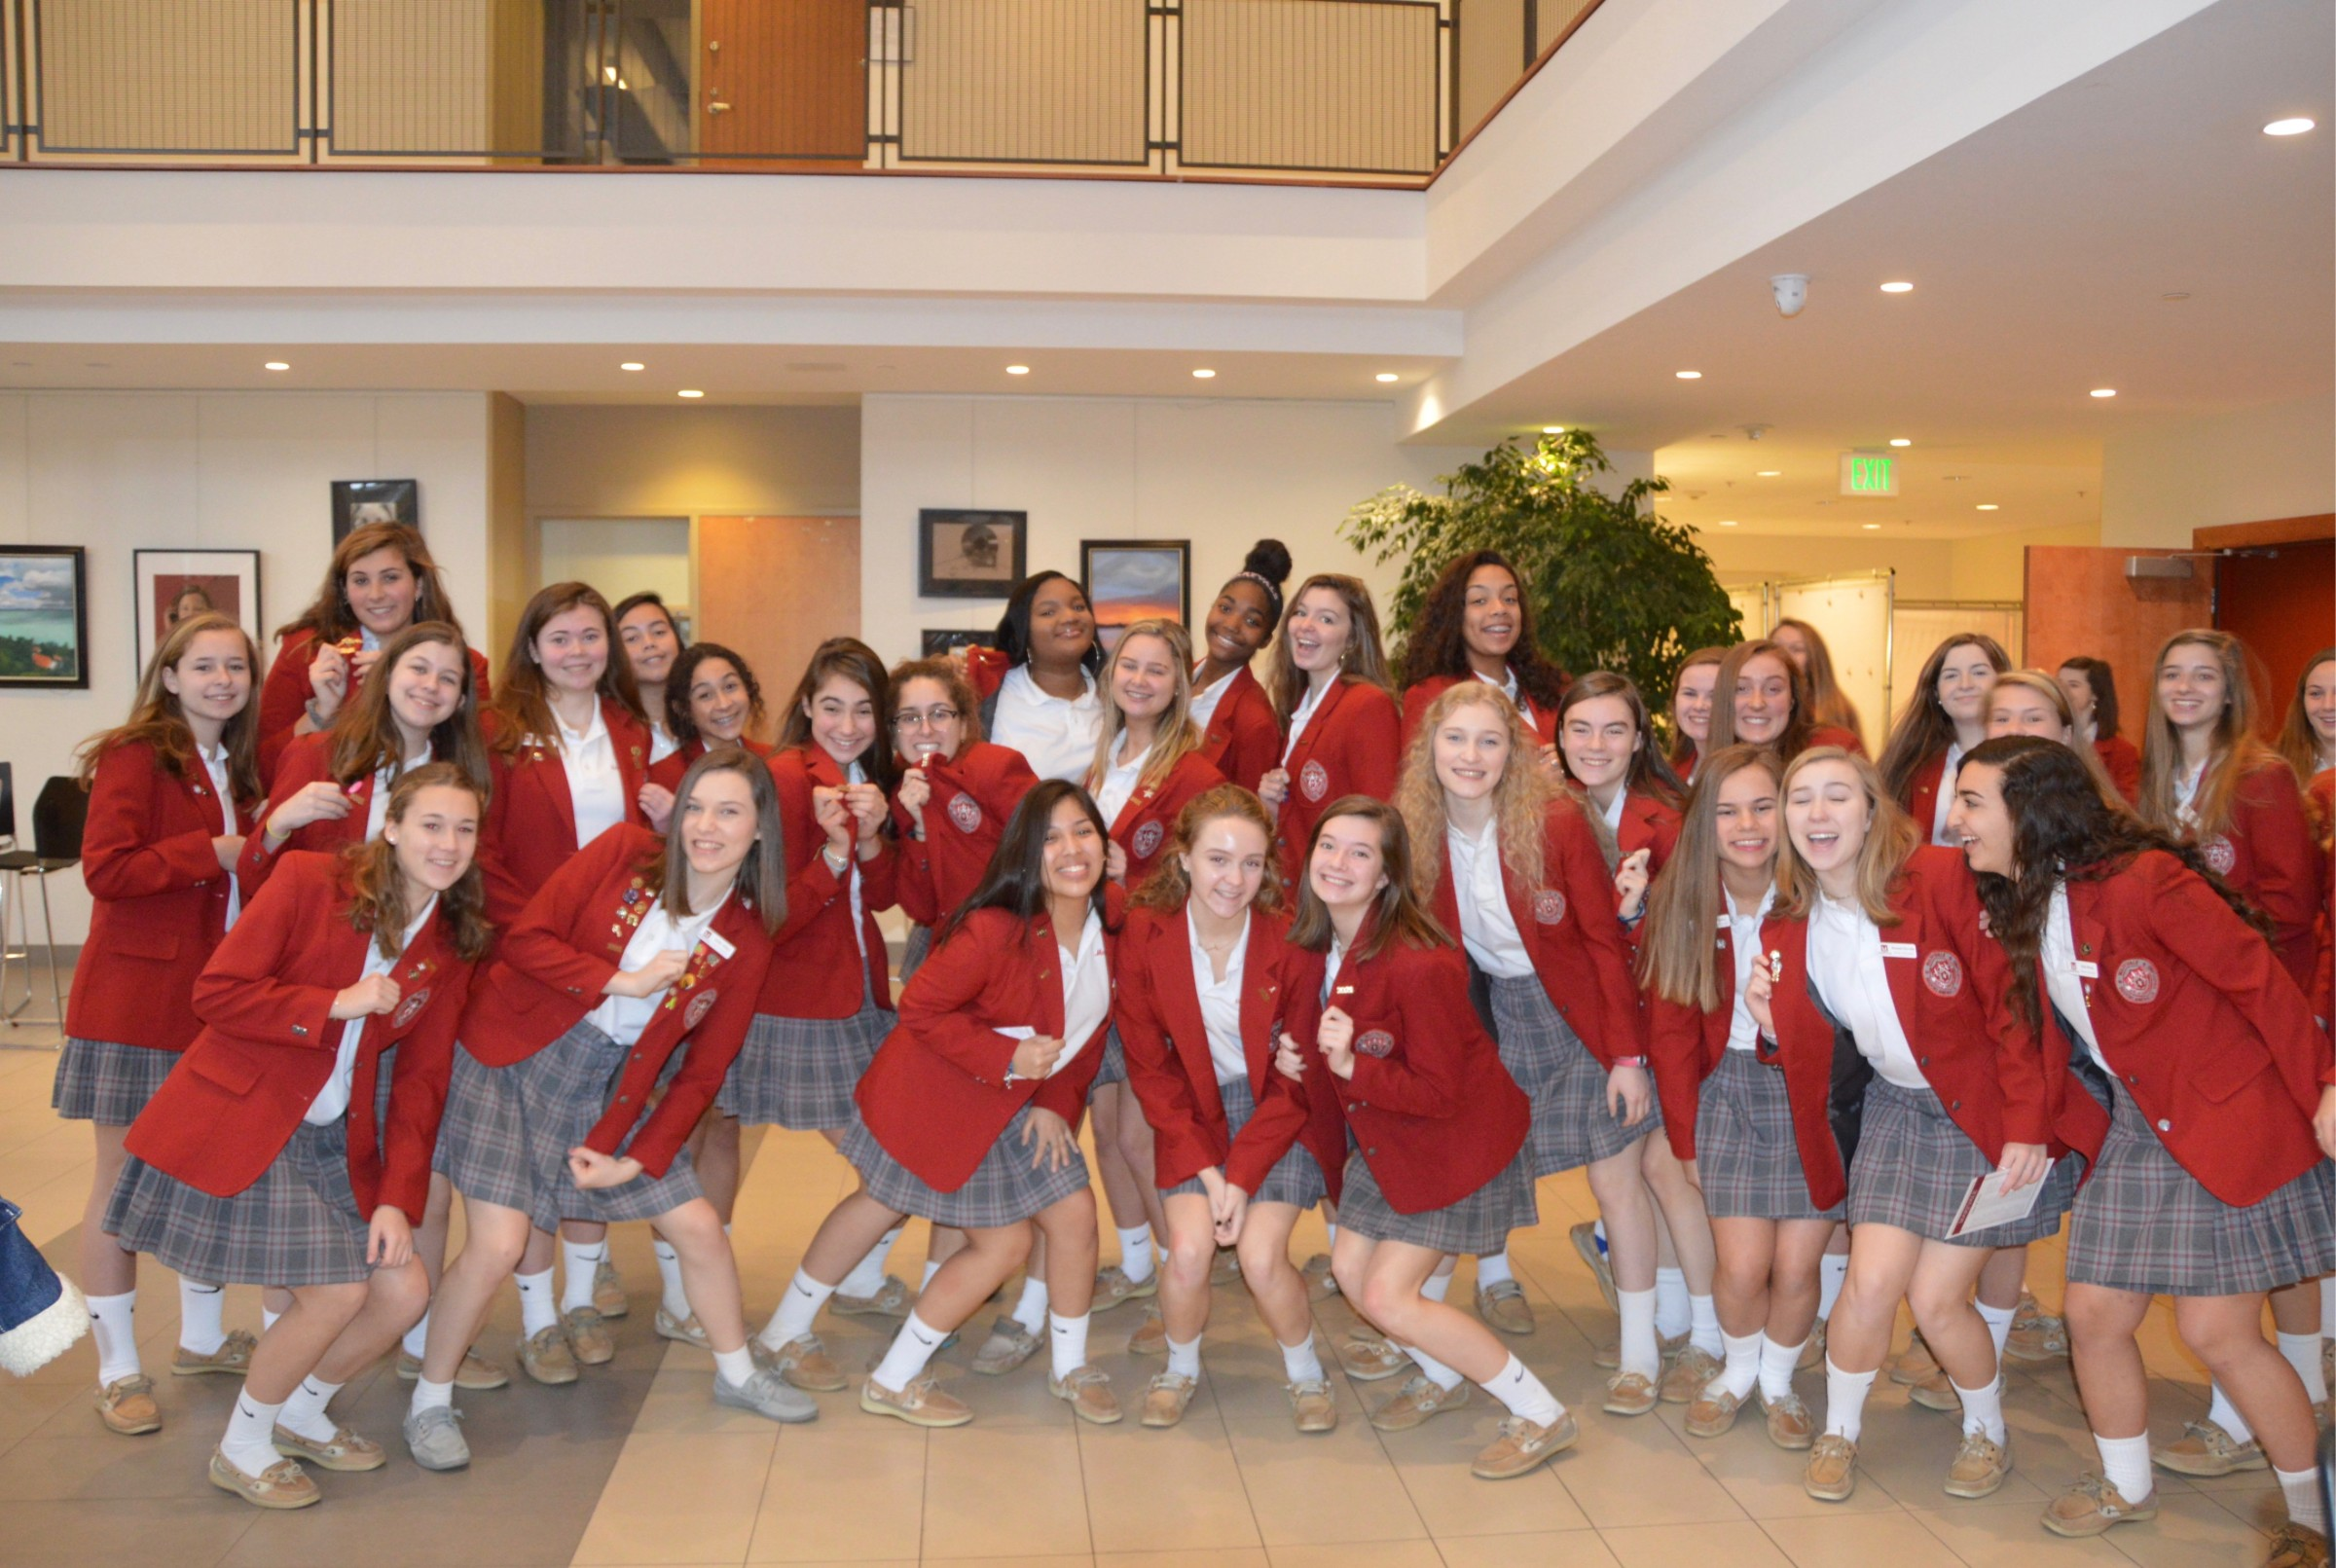 Maryvale Class of 2021 unified through annual Pin Ceremony